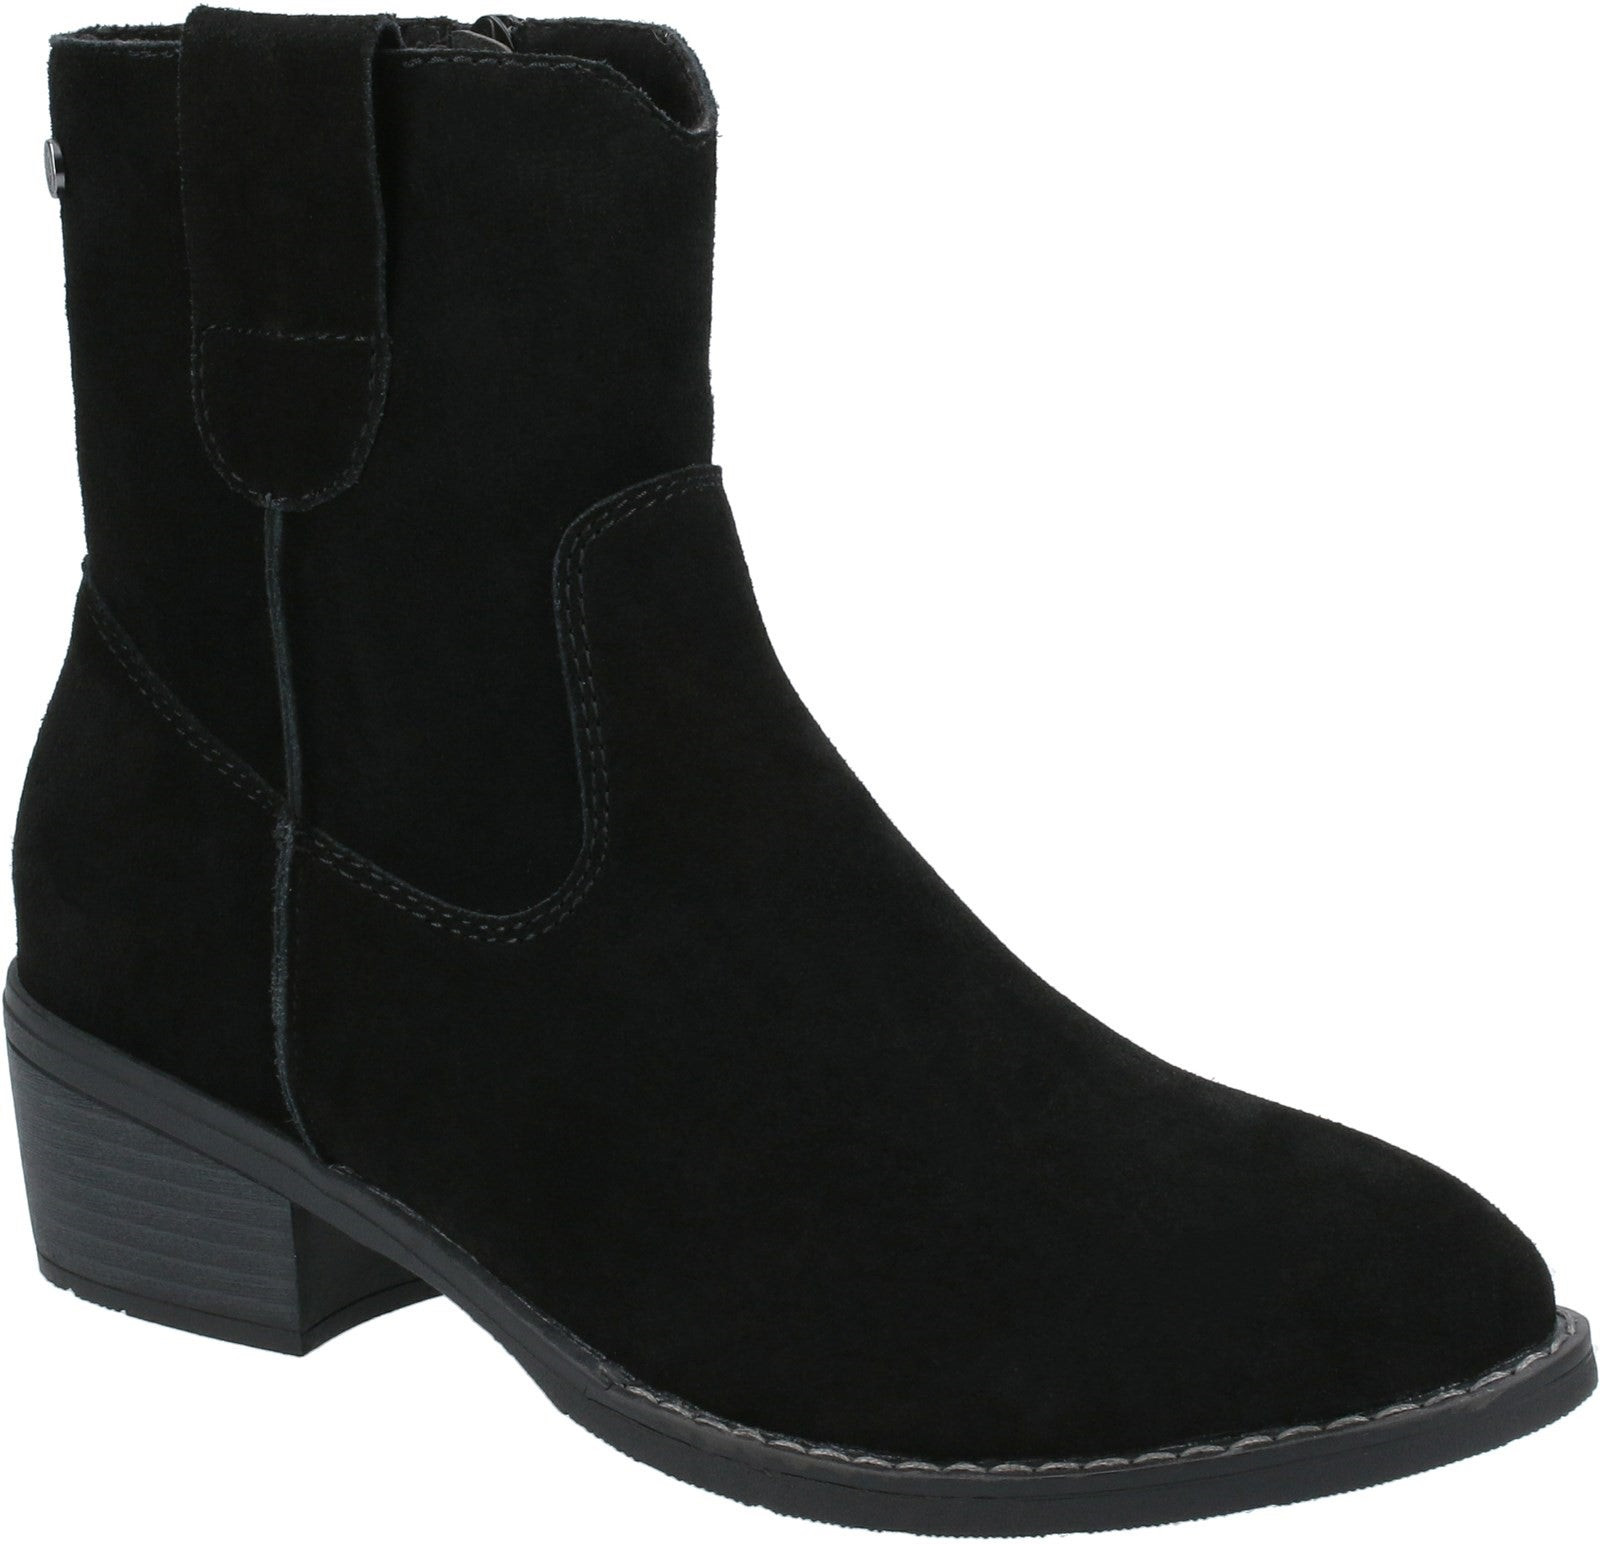 Black Iva Ankle Boots